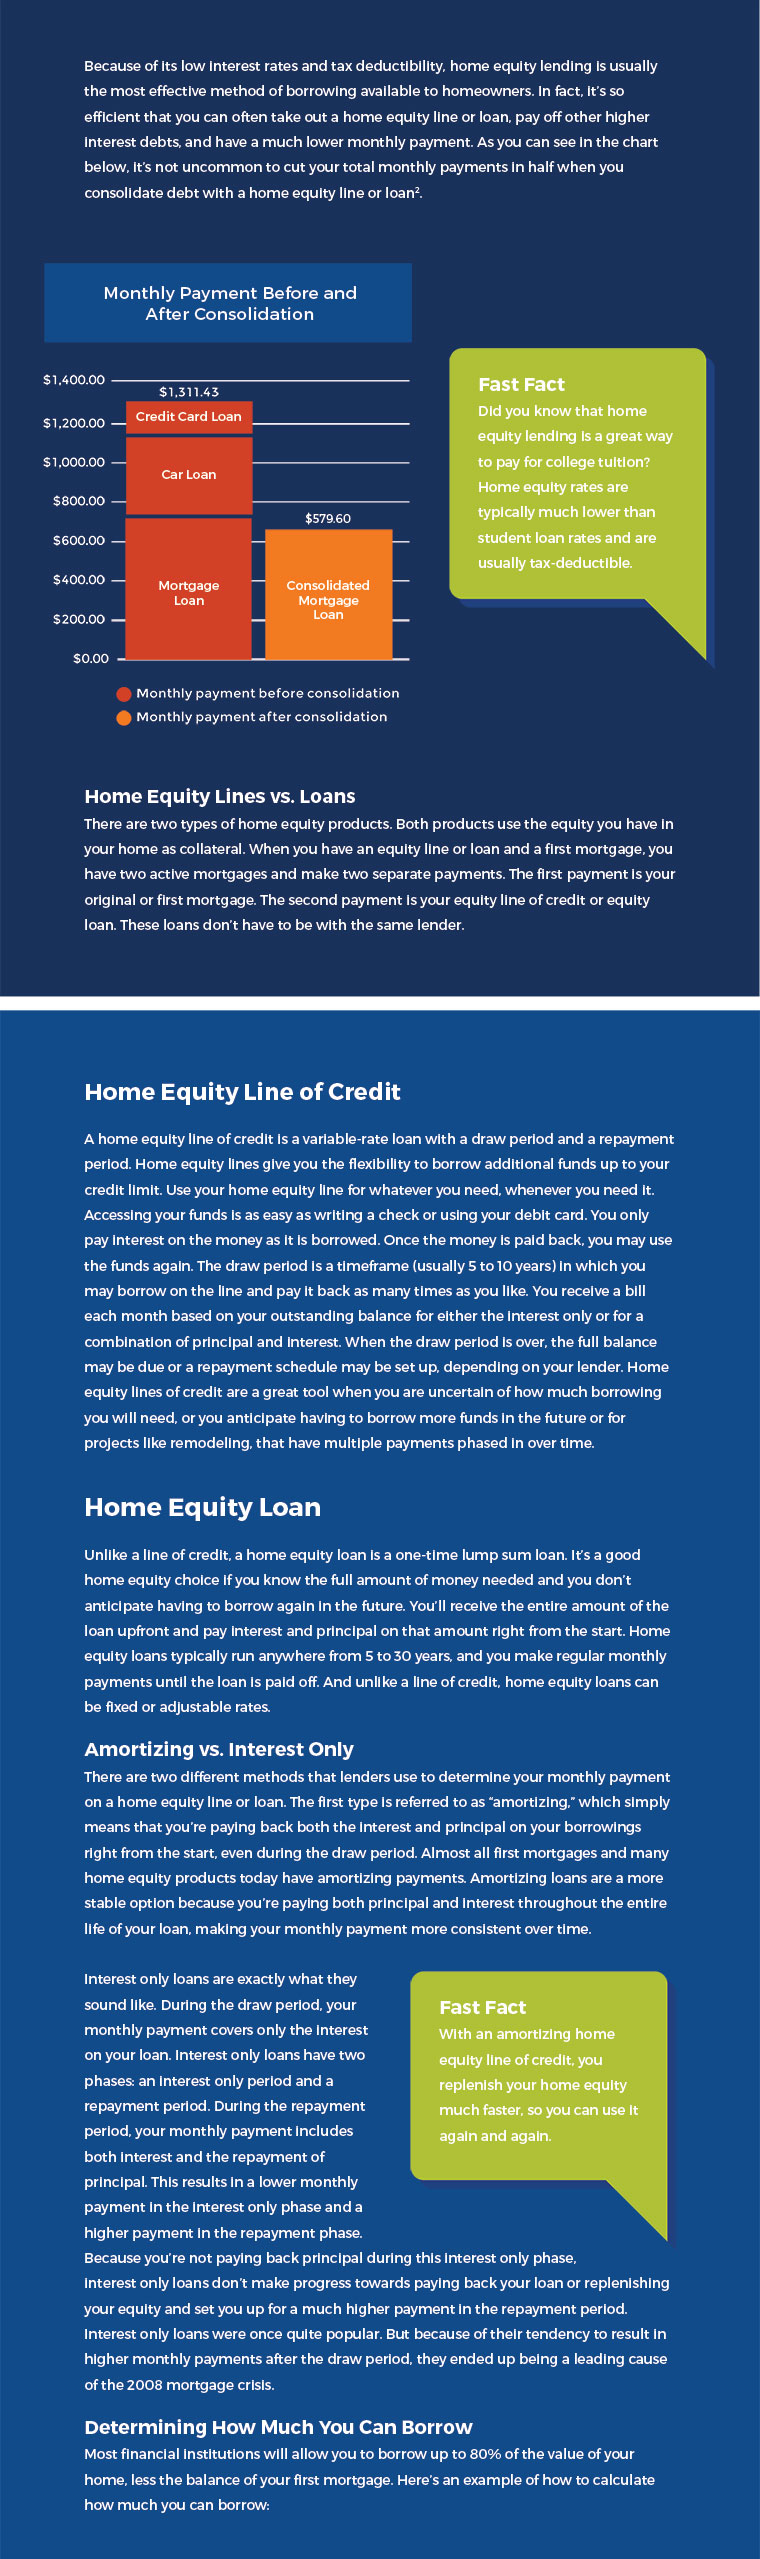 Home Equity Guide II